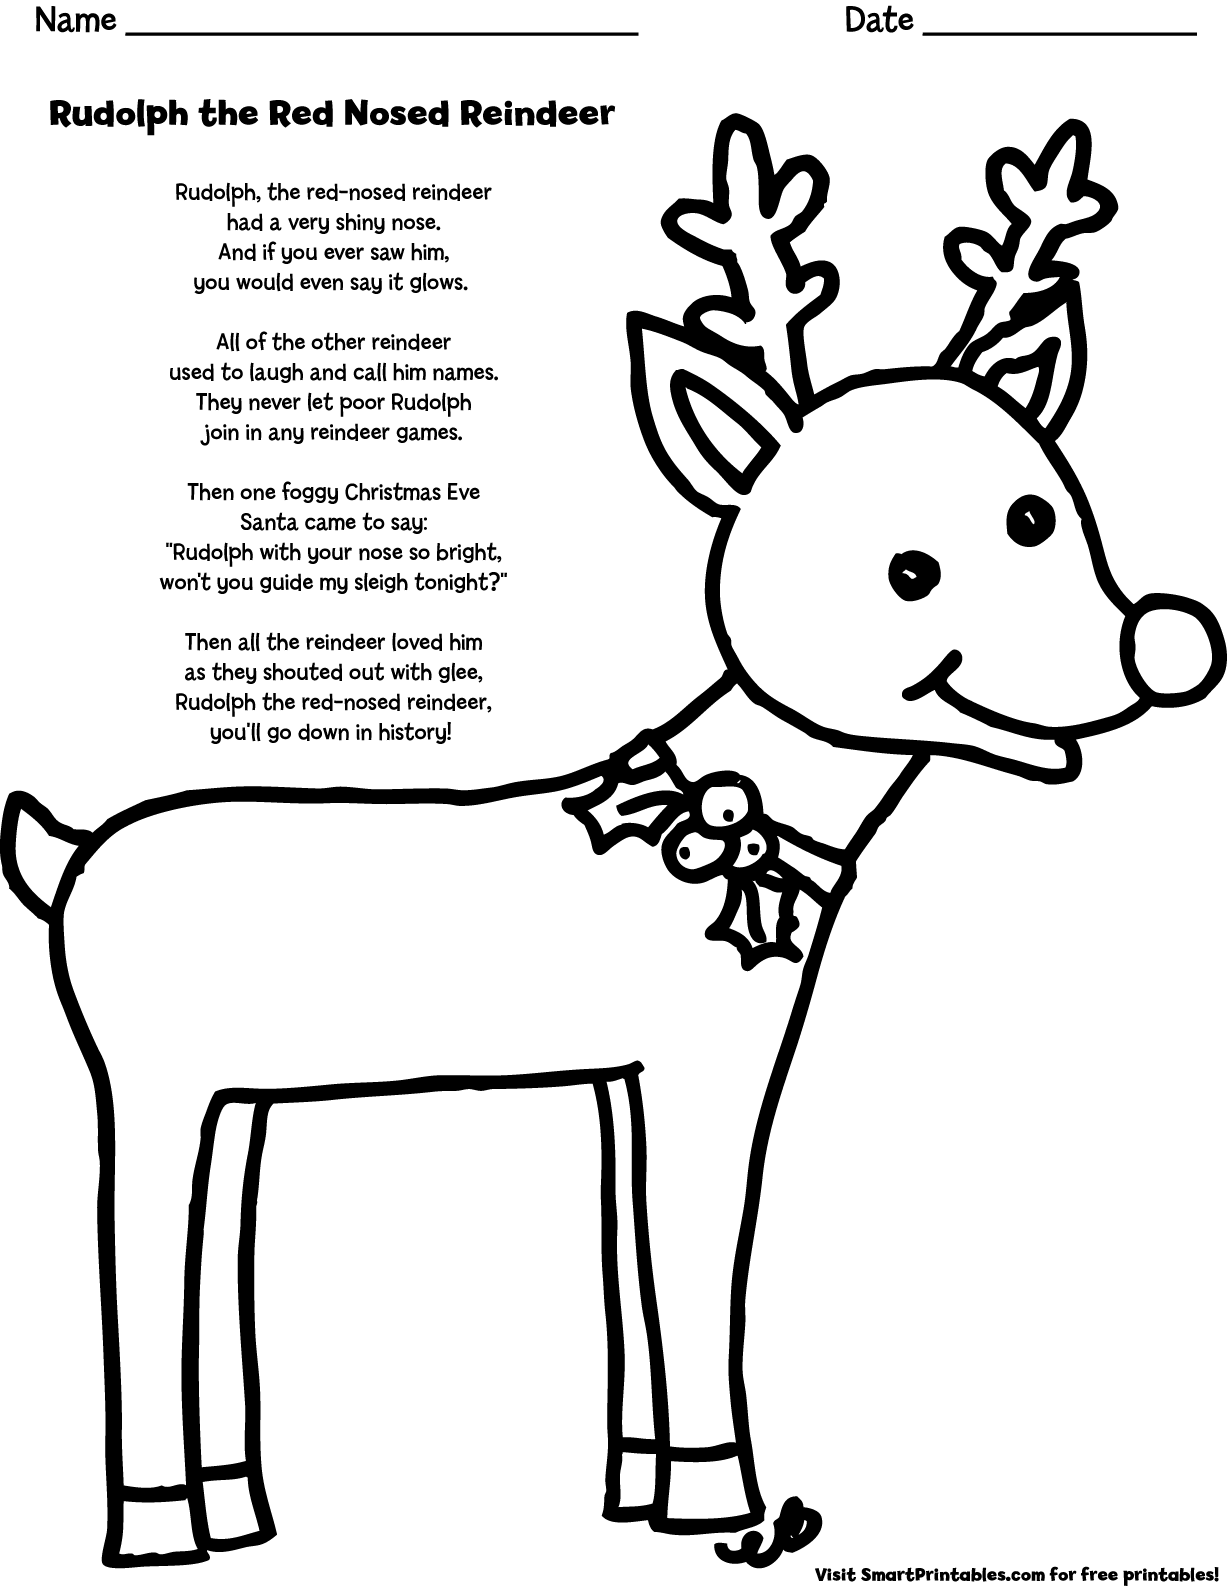 image relating to Rudolph the Red Nosed Reindeer Lyrics Printable known as rudolph the purple nosed reindeer lyrics Carol Brookes Good